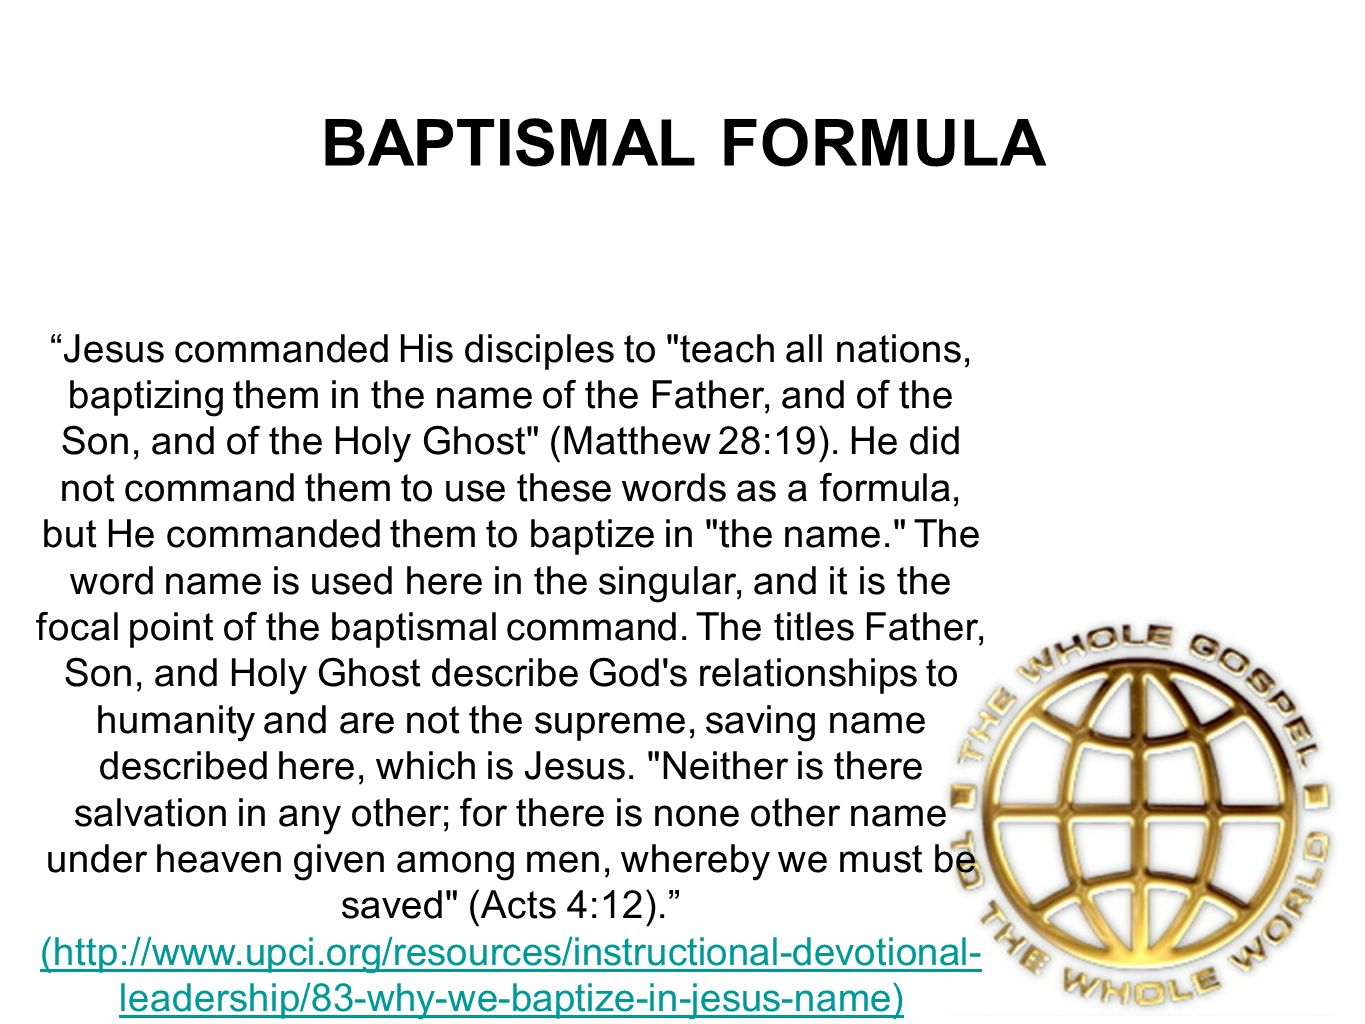 BAPTISMAL FORMULA Jesus commanded His disciples to teach all nations, baptizing them in the name of the Father, and of the Son, and of the Holy Ghost (Matthew 28:19).